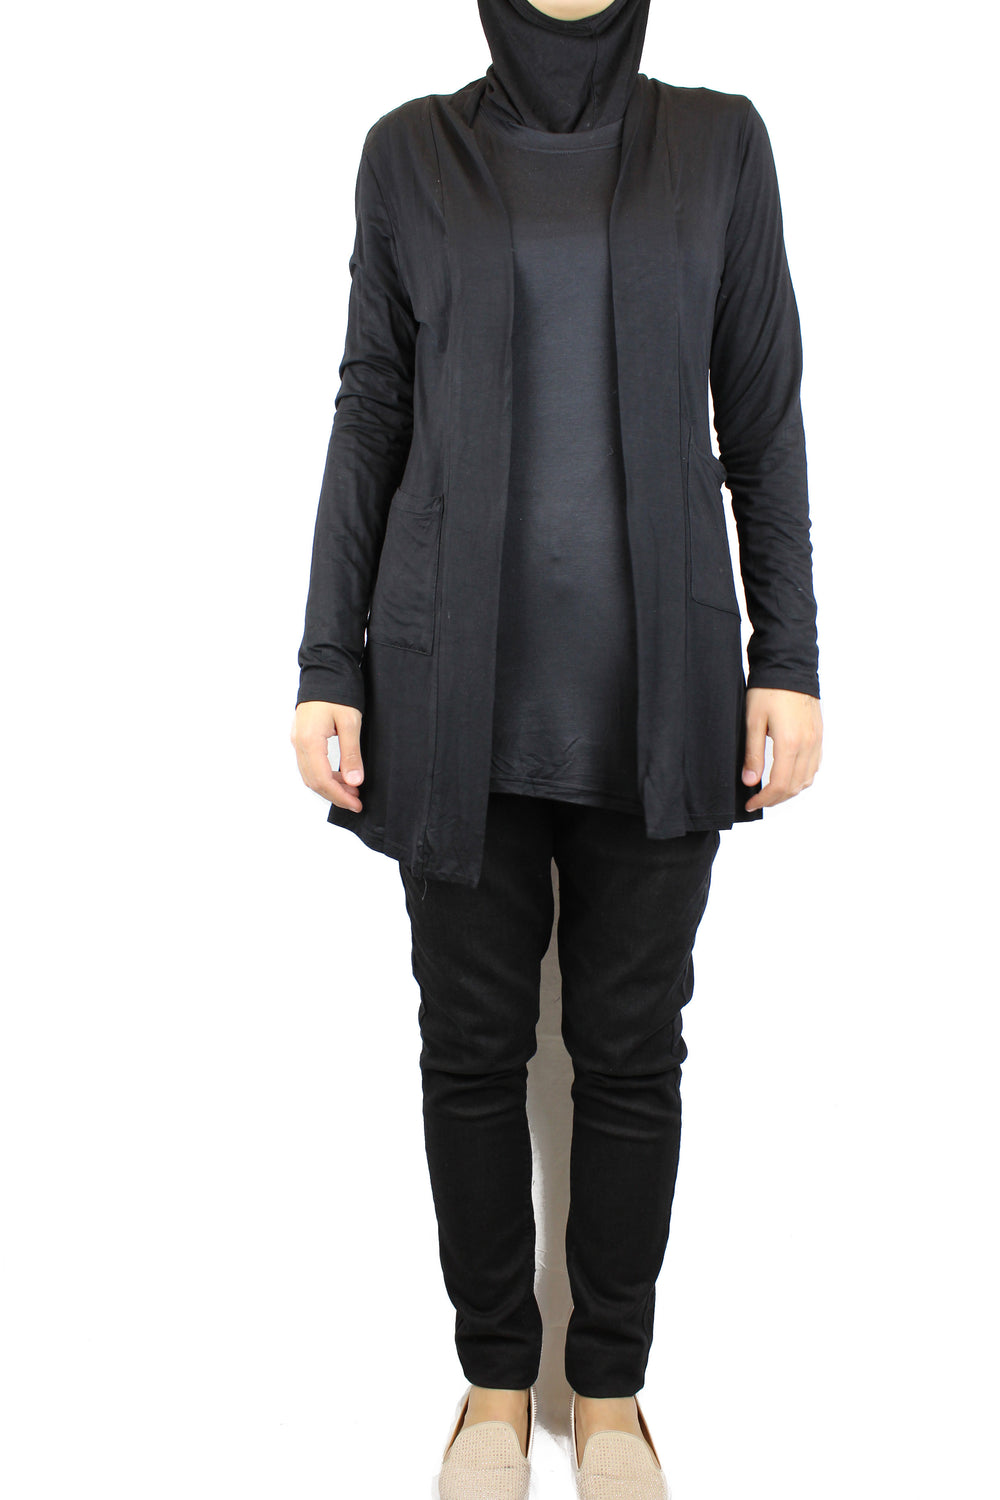 basic black long sleeve cardigan with pockets